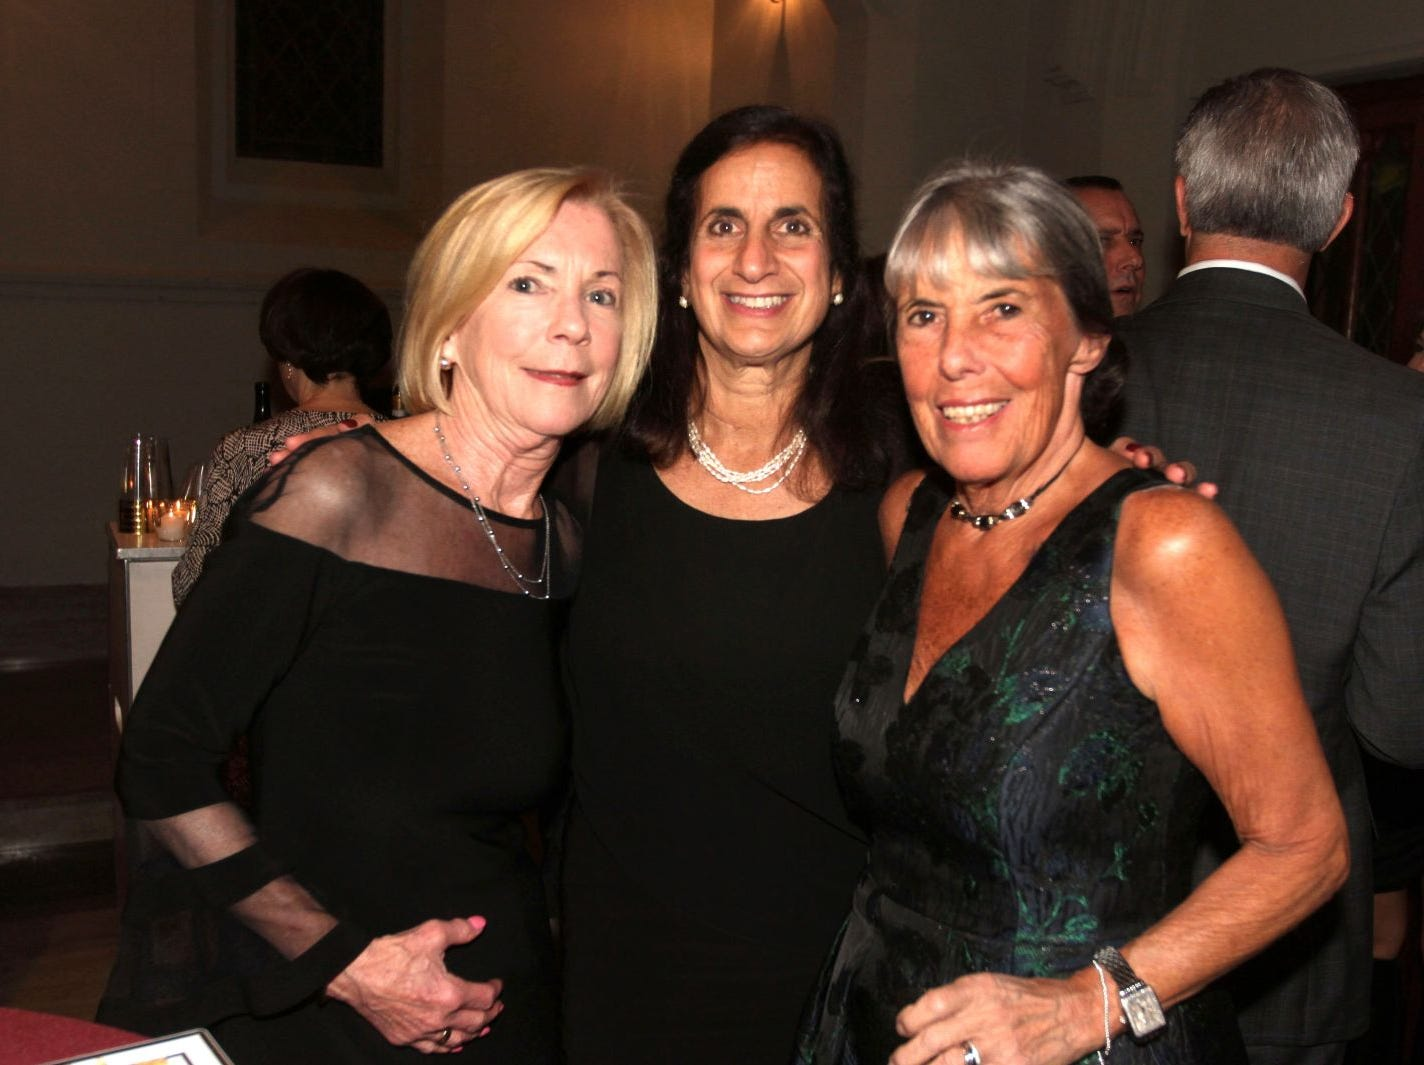 Jane Crotty; Joyce Kwiatowski (Associate Director); Joy Vottero (Executive Director). Wyckoff Family YMCA hosted its 75th anniversary gala to celebrate its benefactors, held at the Rio Vista seminary in Mahwah. 11/16/2018